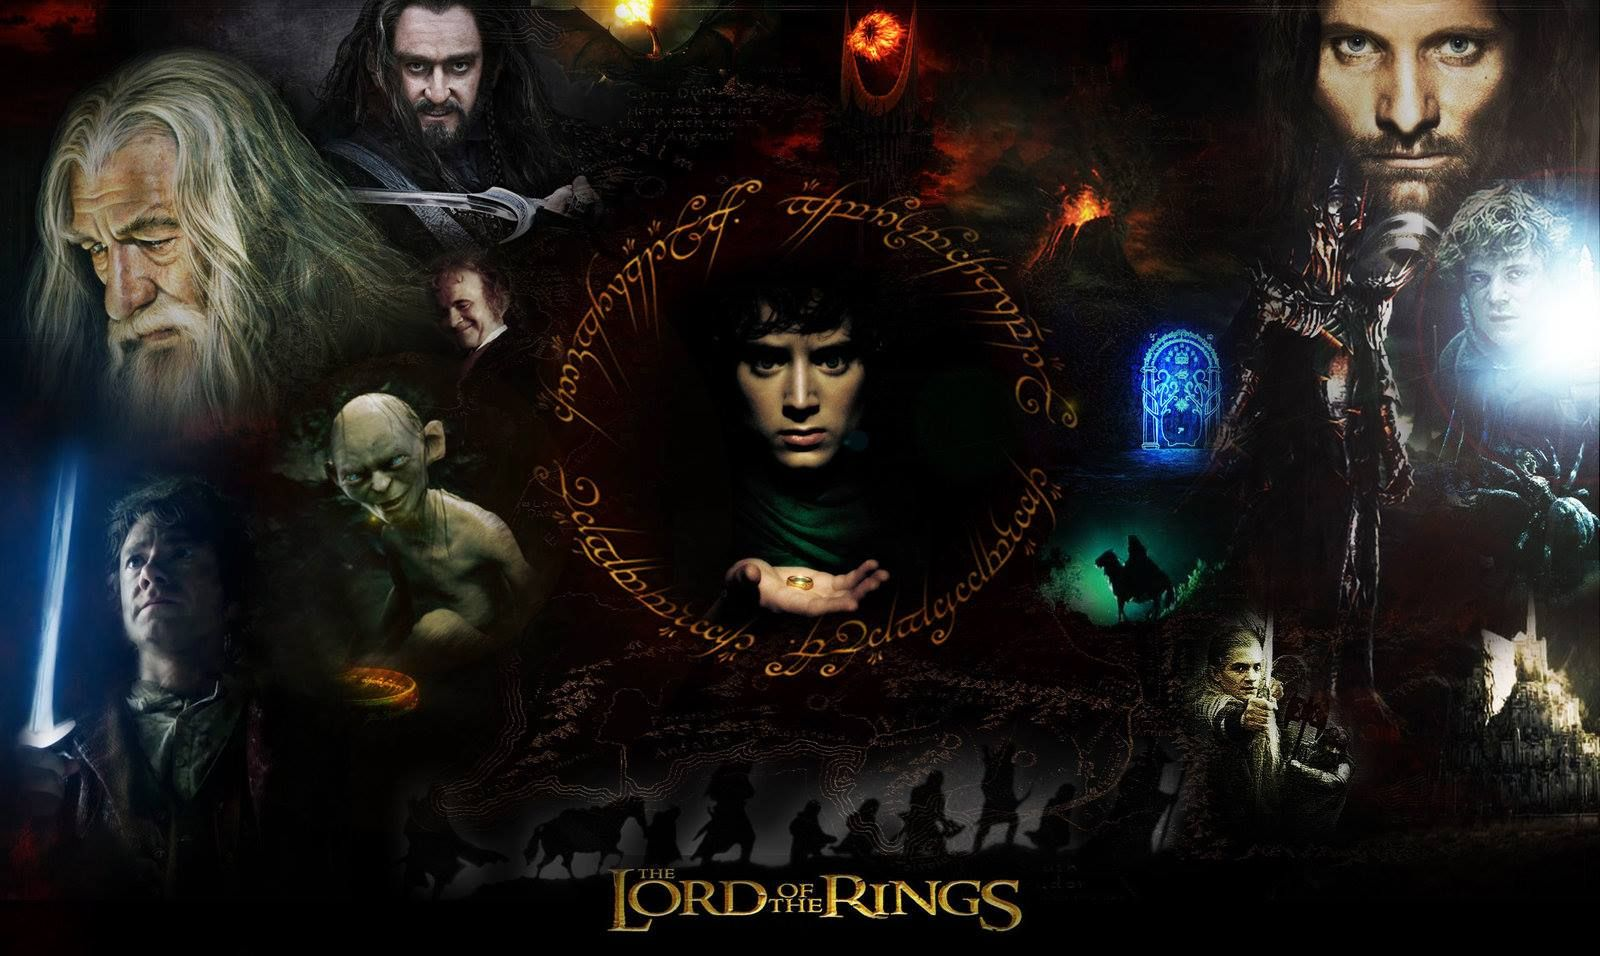 Facebook Fellowship Of The Ring, Lord Of The Rings, The Two Towers, Middle